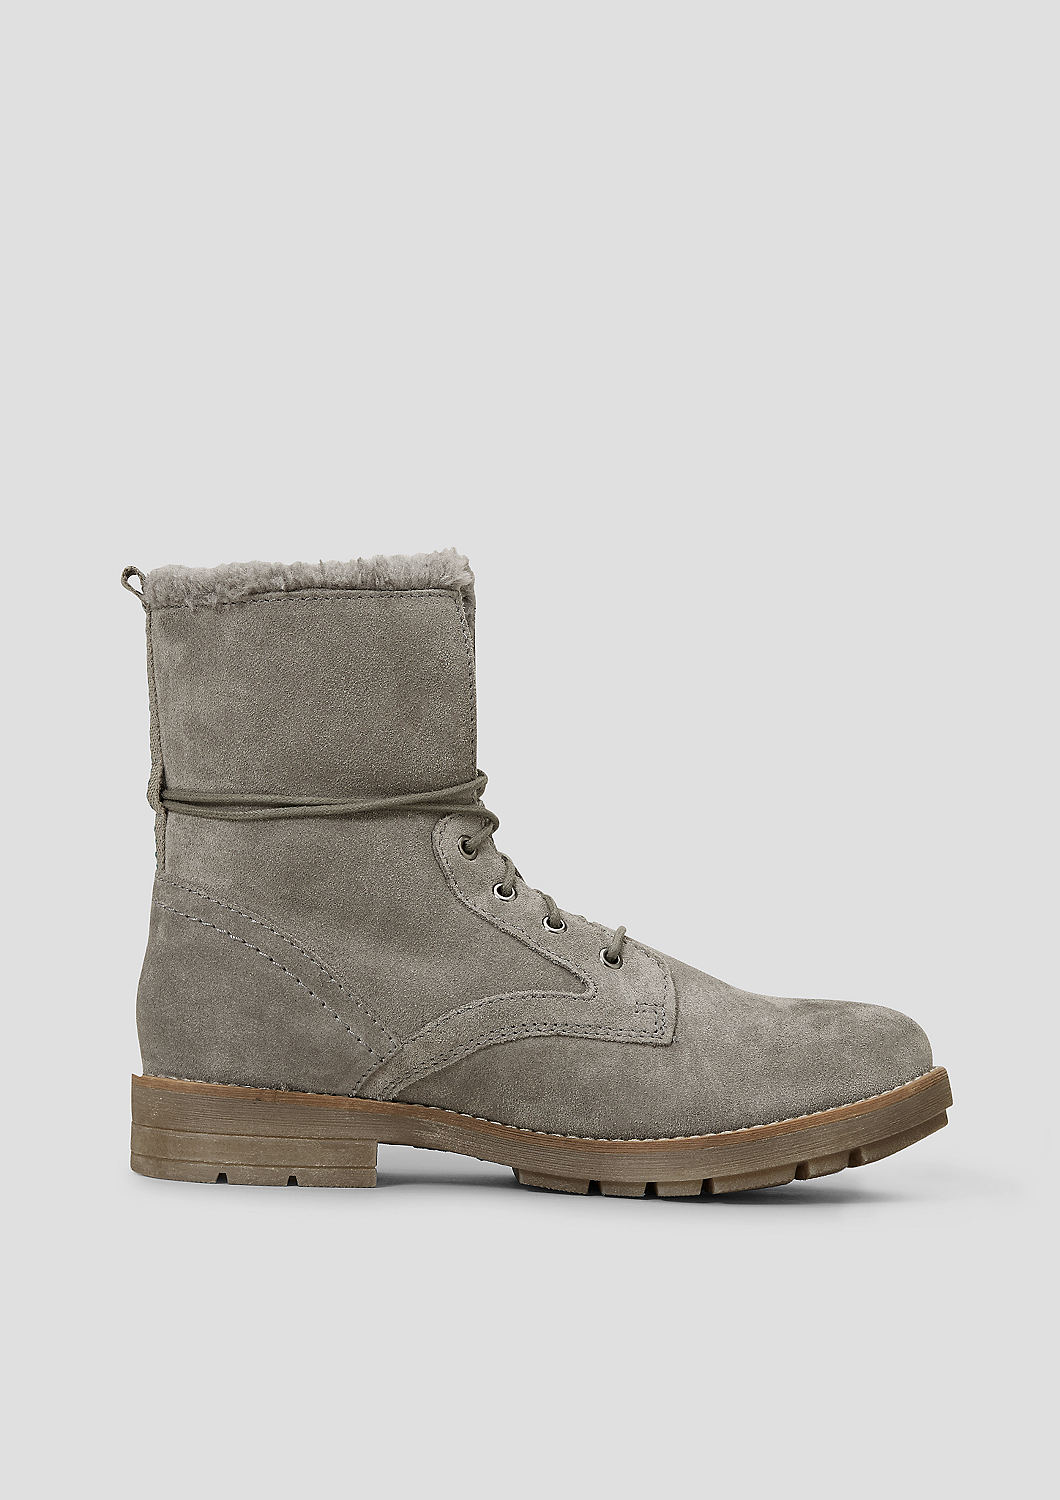 s.Oliver - Stiefel - 4